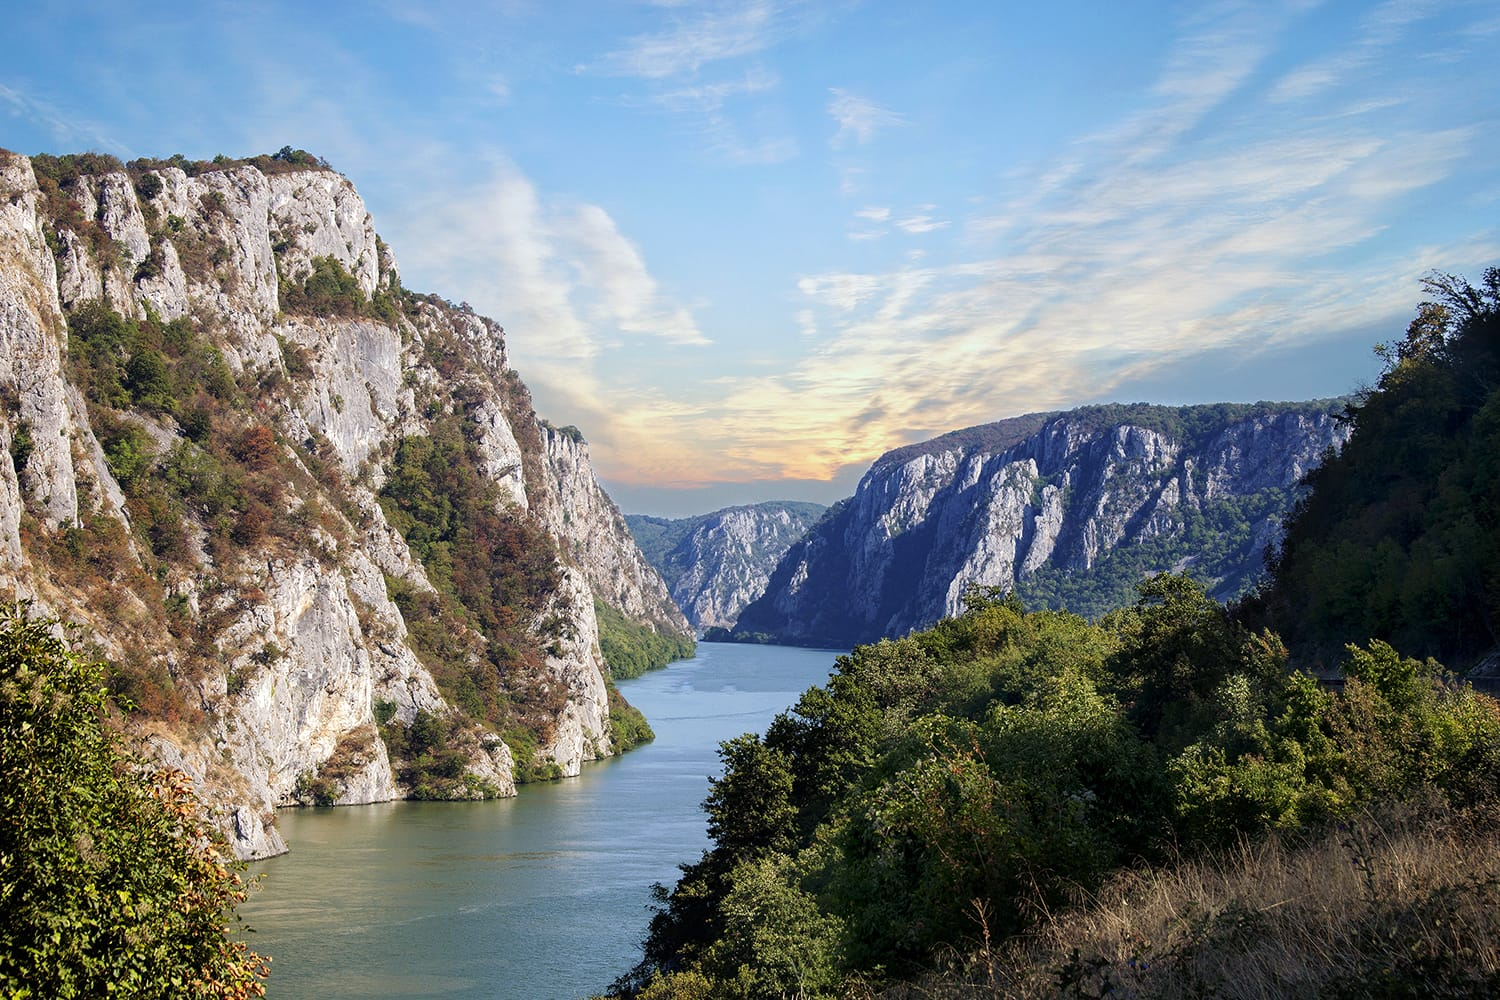 Danube gorge, Danube in Djerdap National park, Serbia